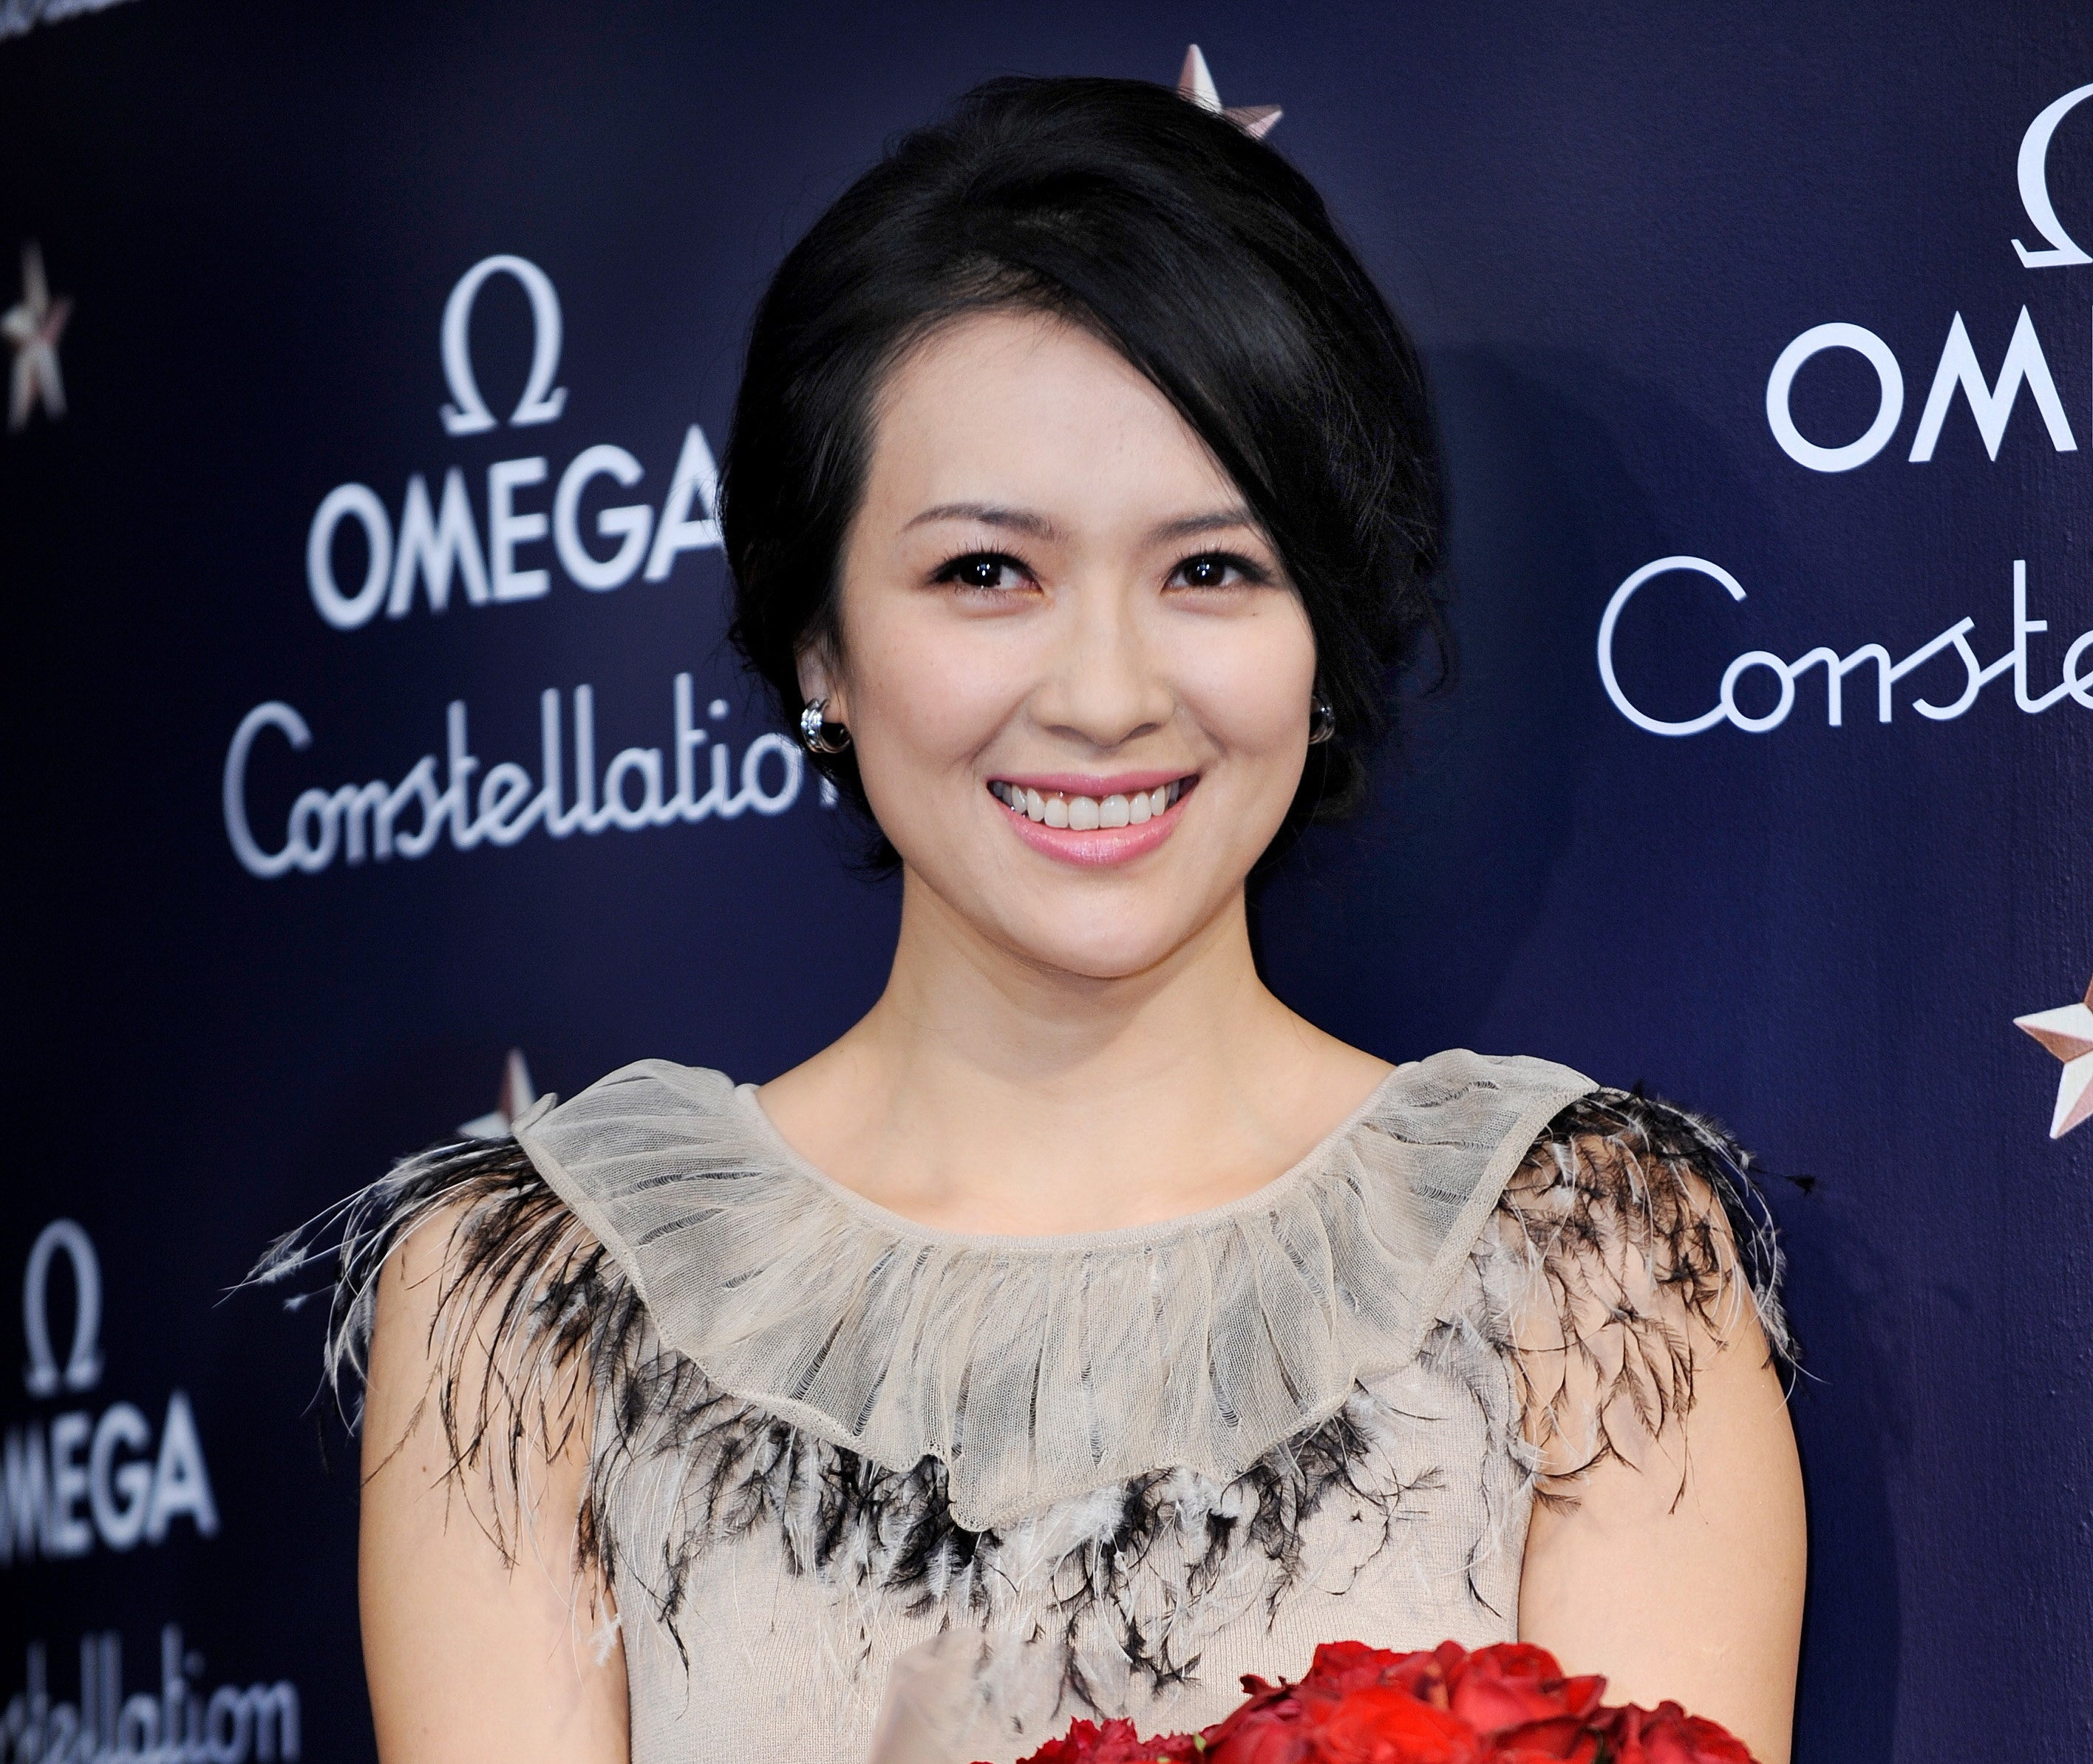 Zhang Ziyi smiling at a event in Tokyo as she holds a bouquet of red roses